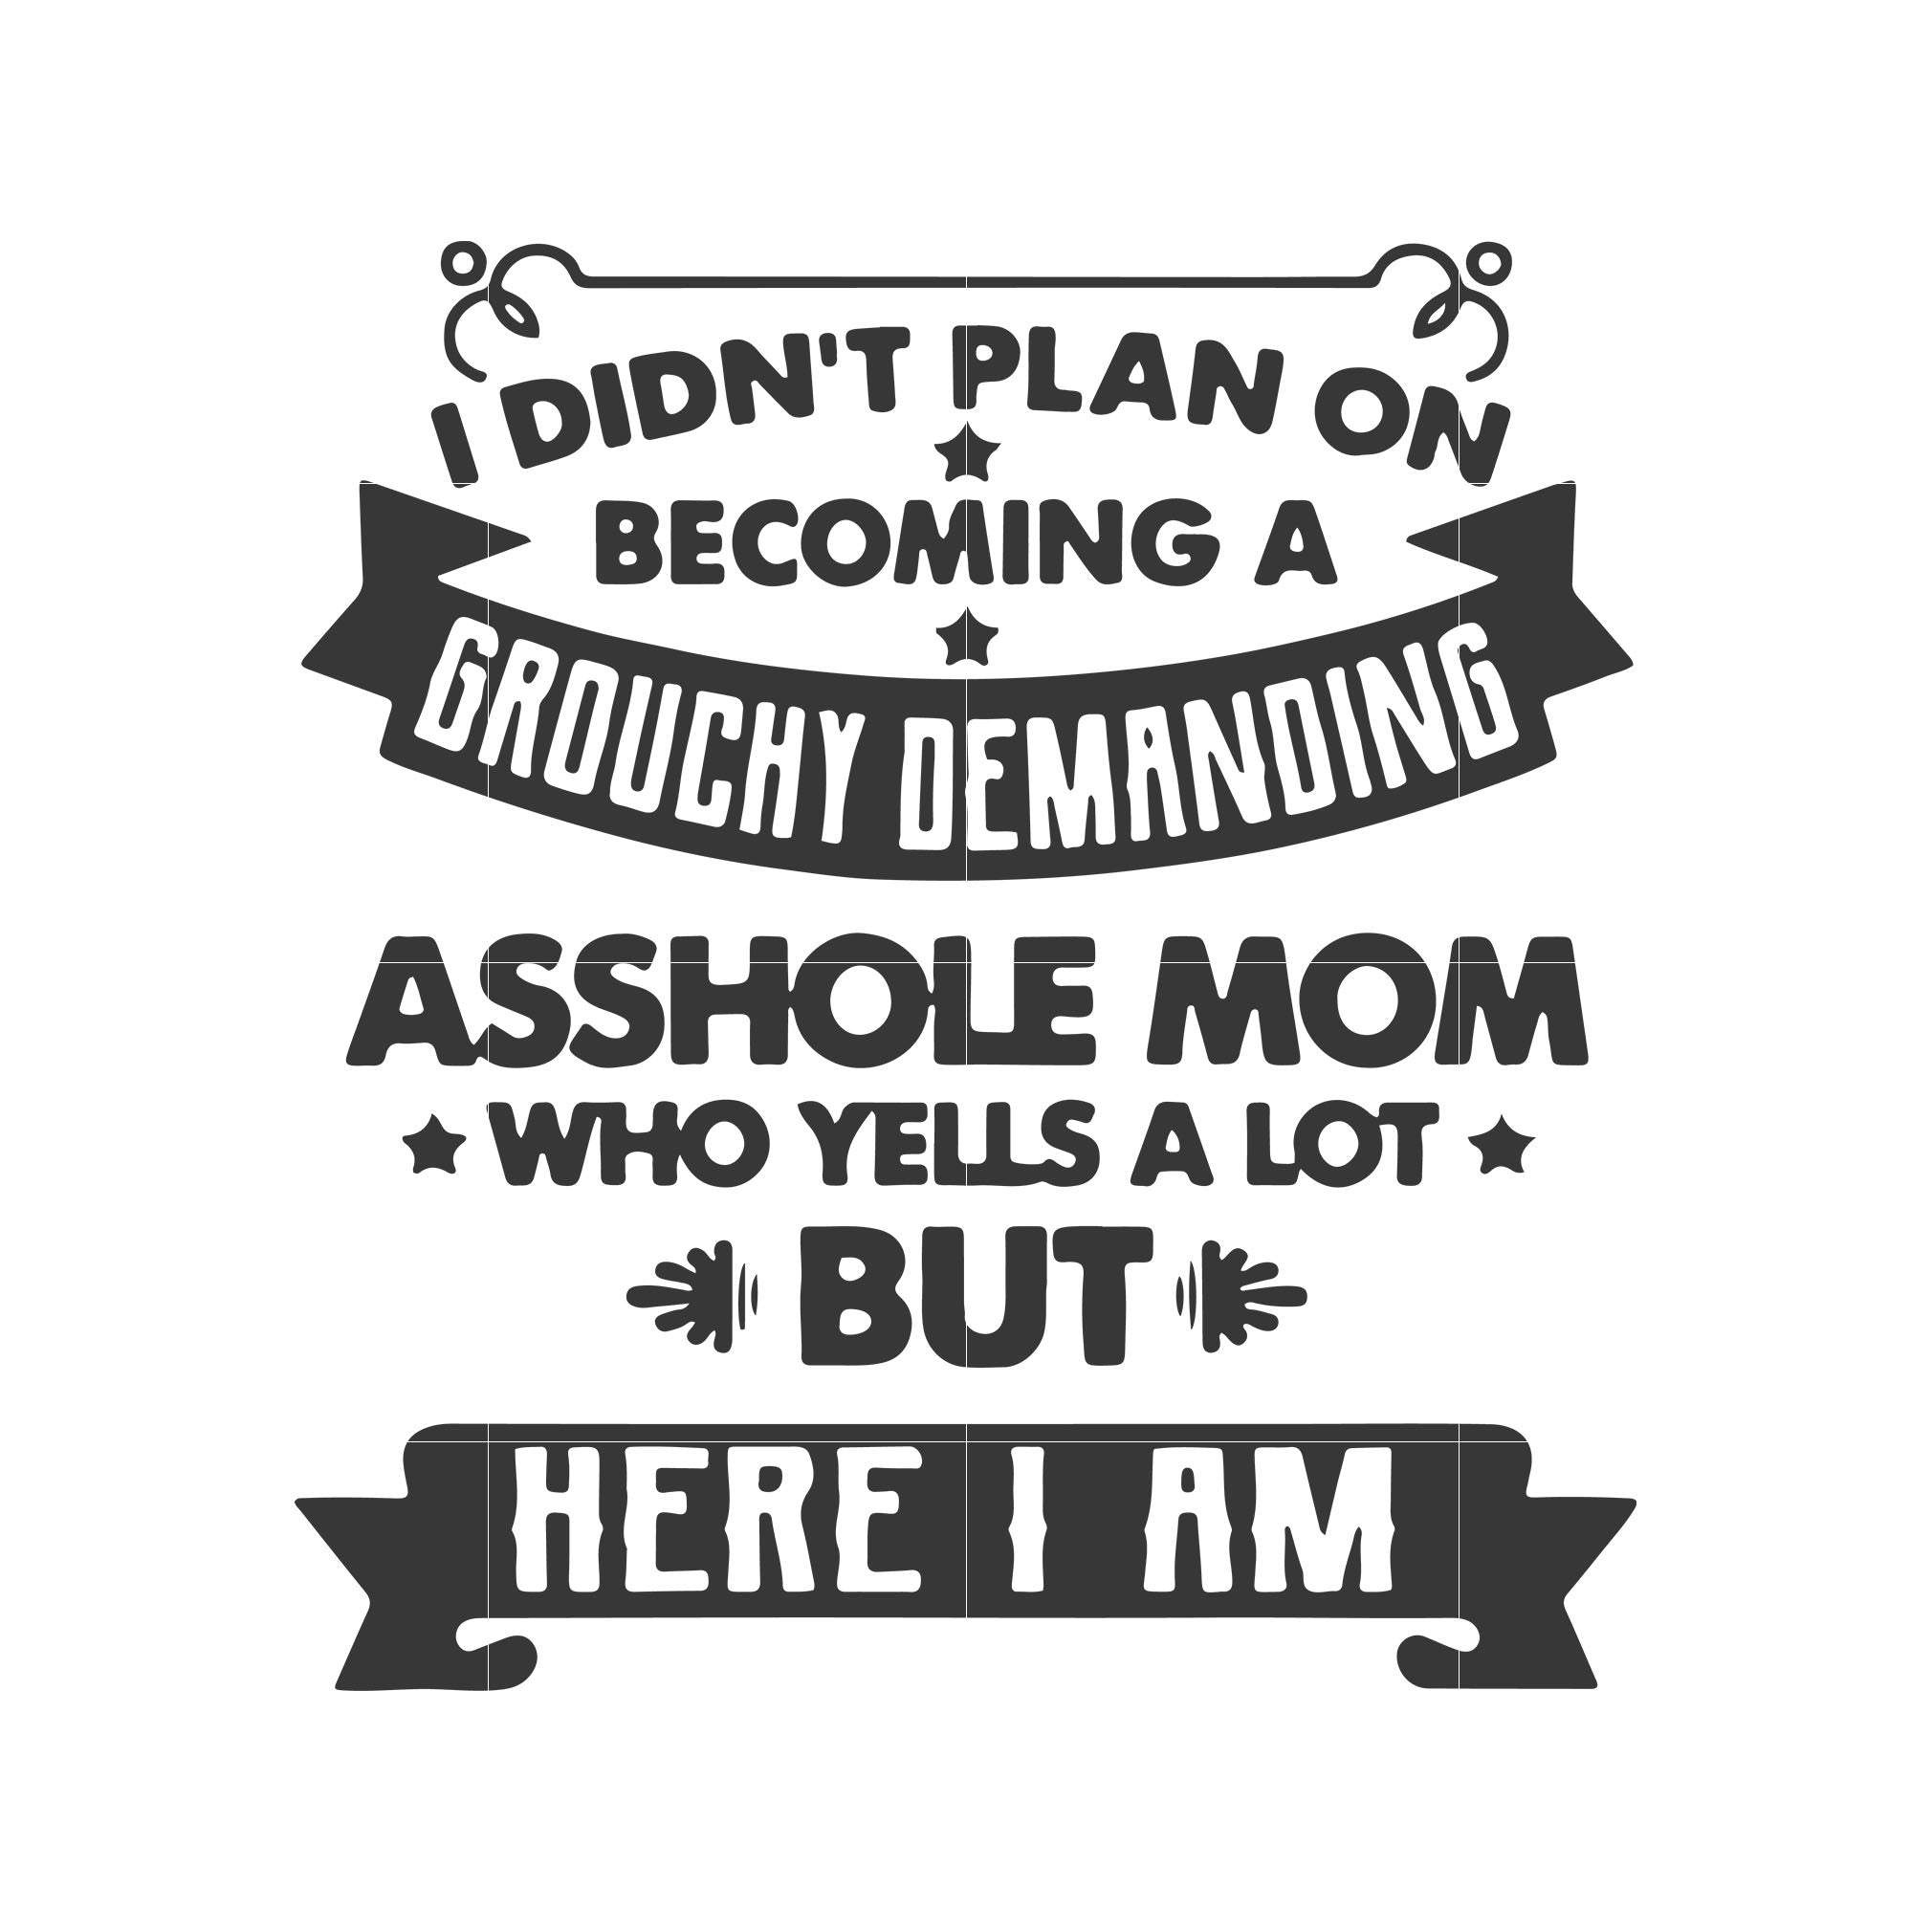 I didn't plan on becoming a grouchy demanding asshole mom who yells a lot but here i am svg ,dxf,eps,png digital file